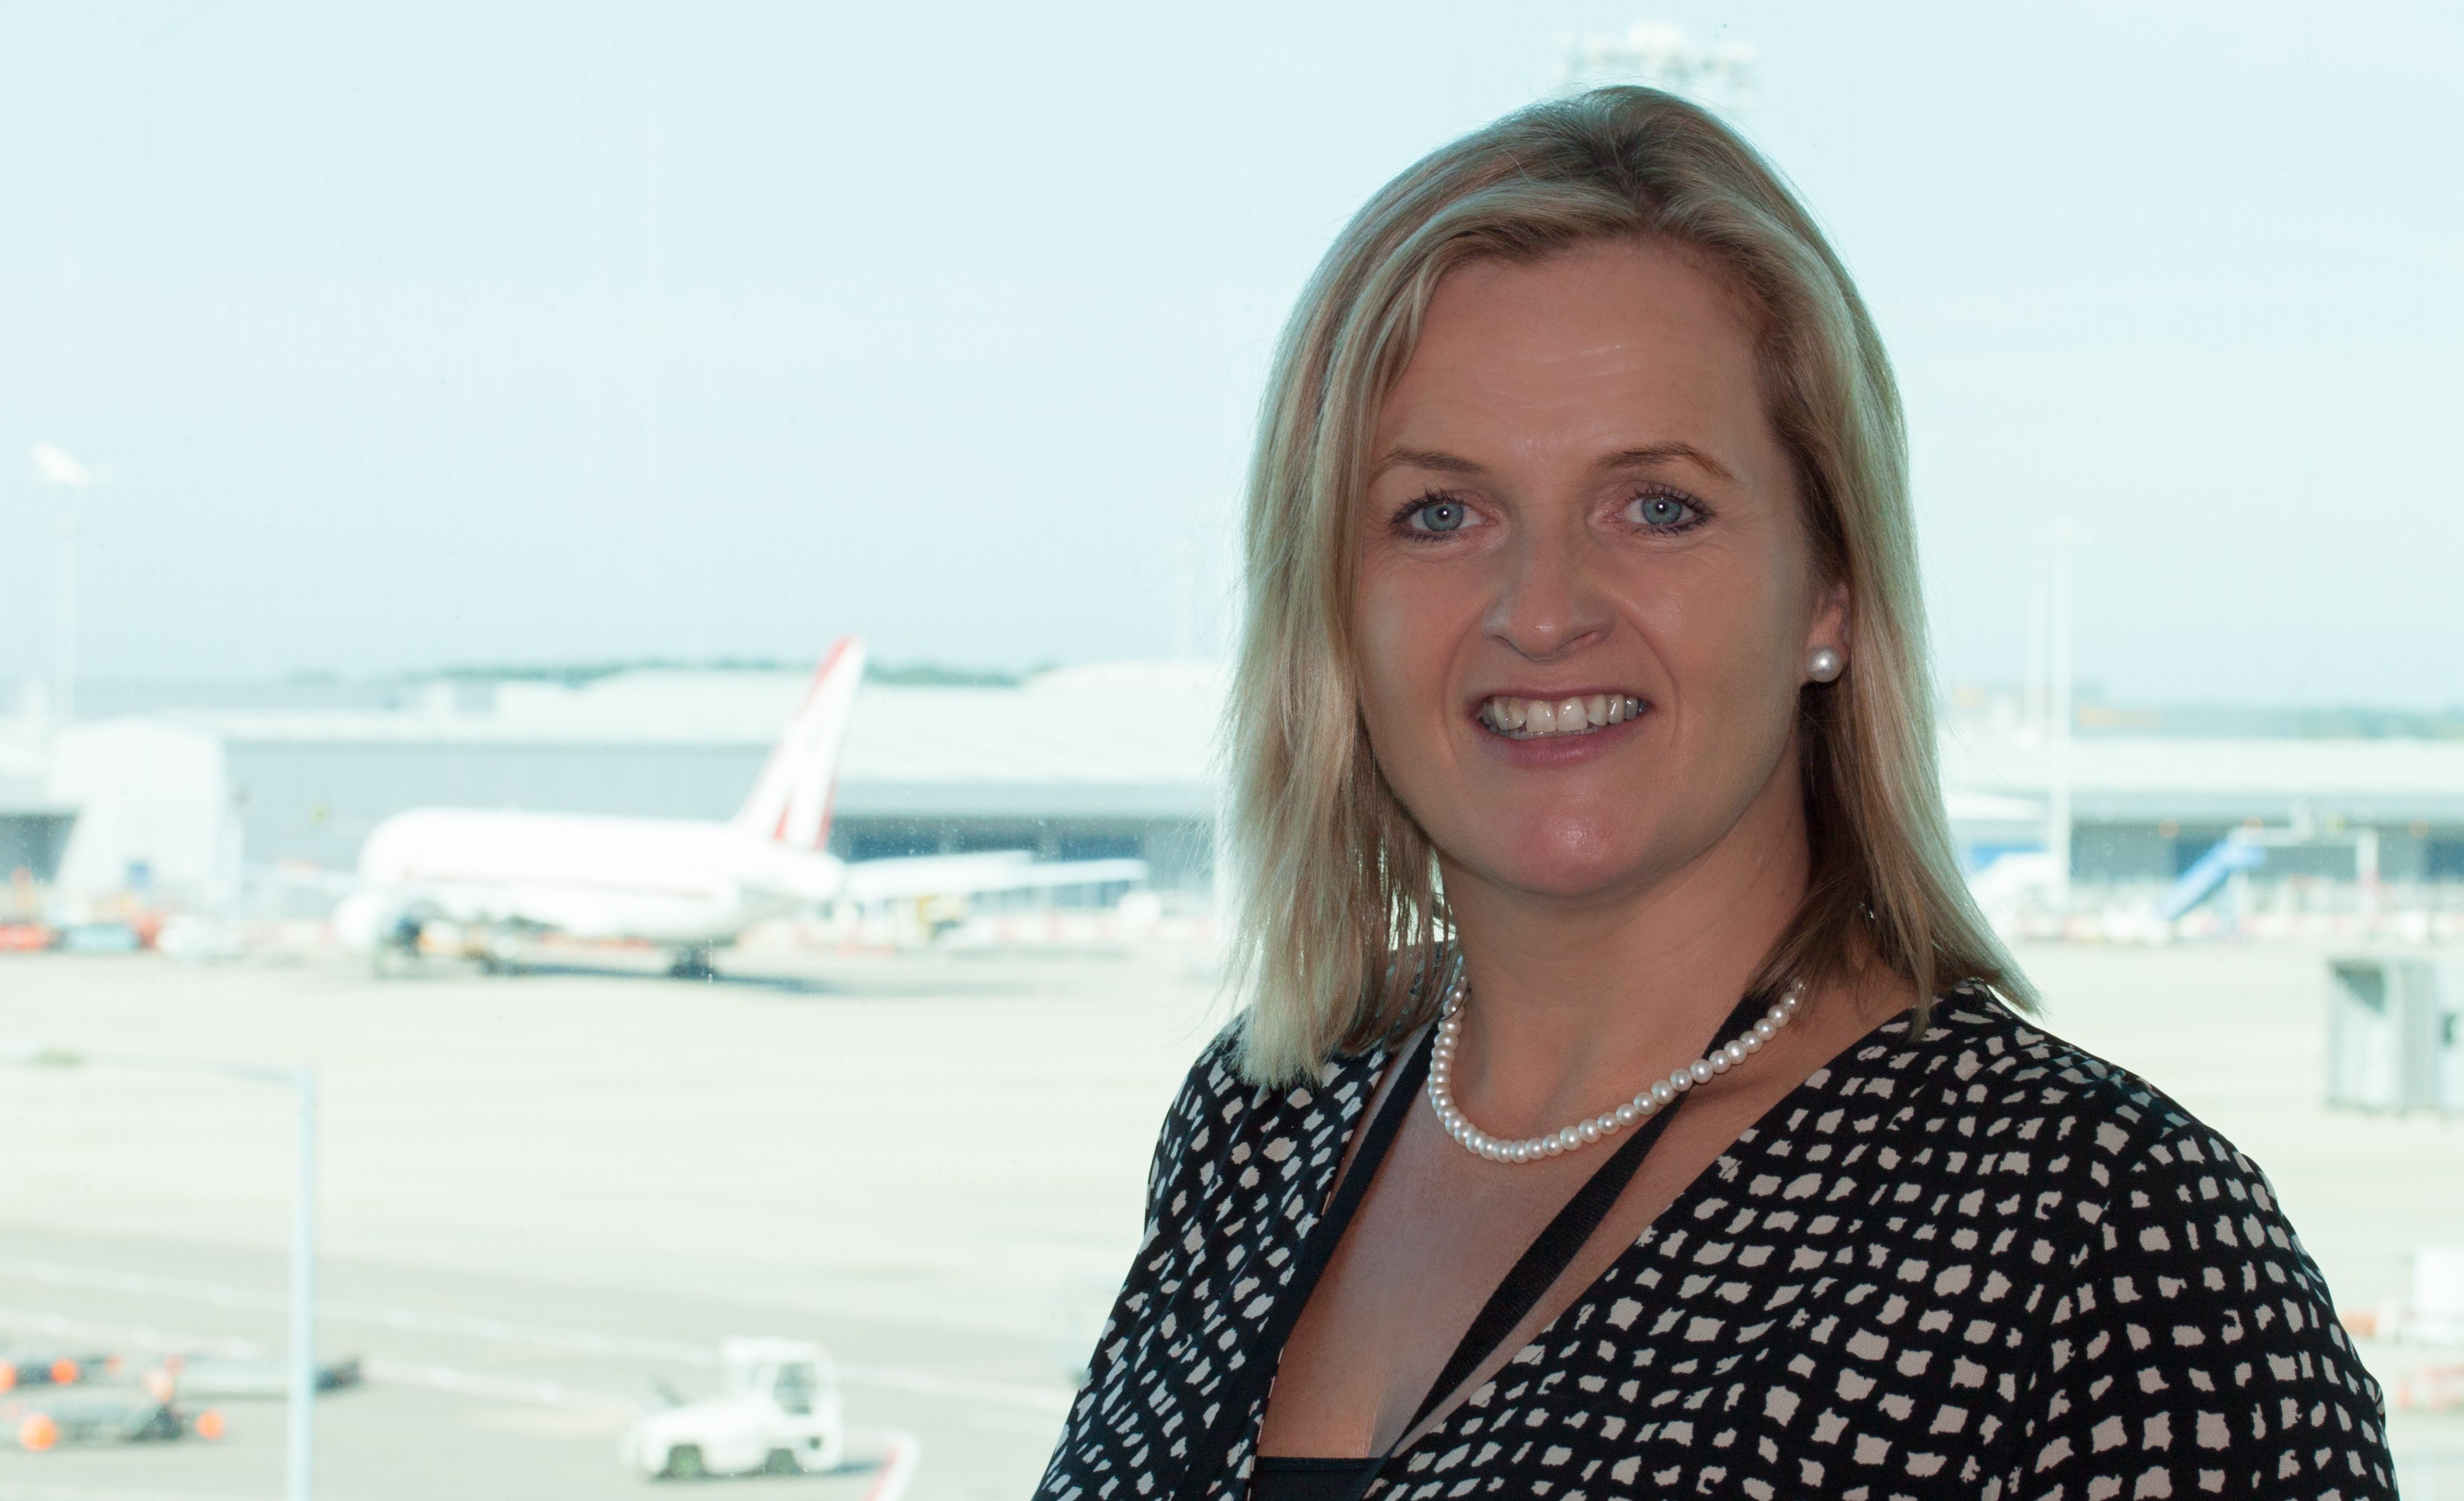 East Midlands airport names new managing director